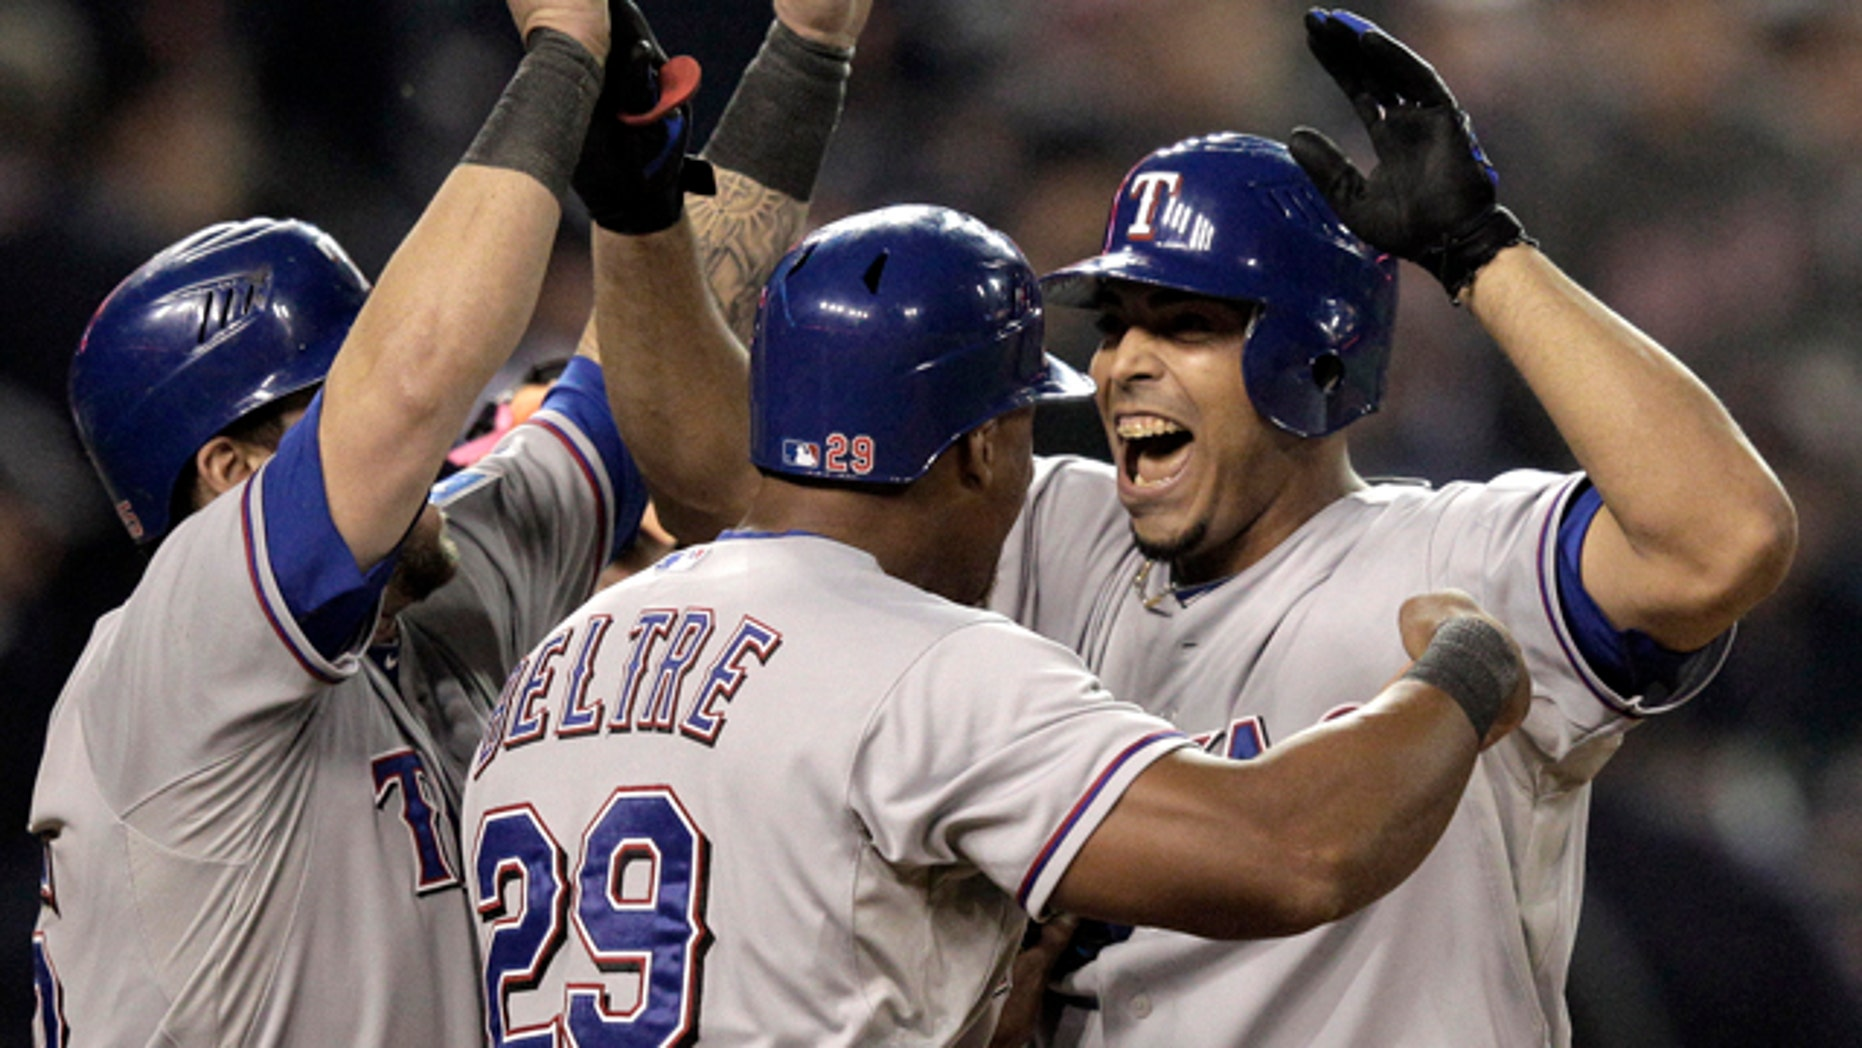 Texas Rangers' Adrian Beltre and Mike Napoli celebrate with teammate Nelson Cruz after his 3-run home run in the 11th inning in Game 4 of baseball's American League championship series against the Detroit Tigers, Wednesday, Oct. 12, 2011, in Detroit. (AP Photo/Charlie Riedel)